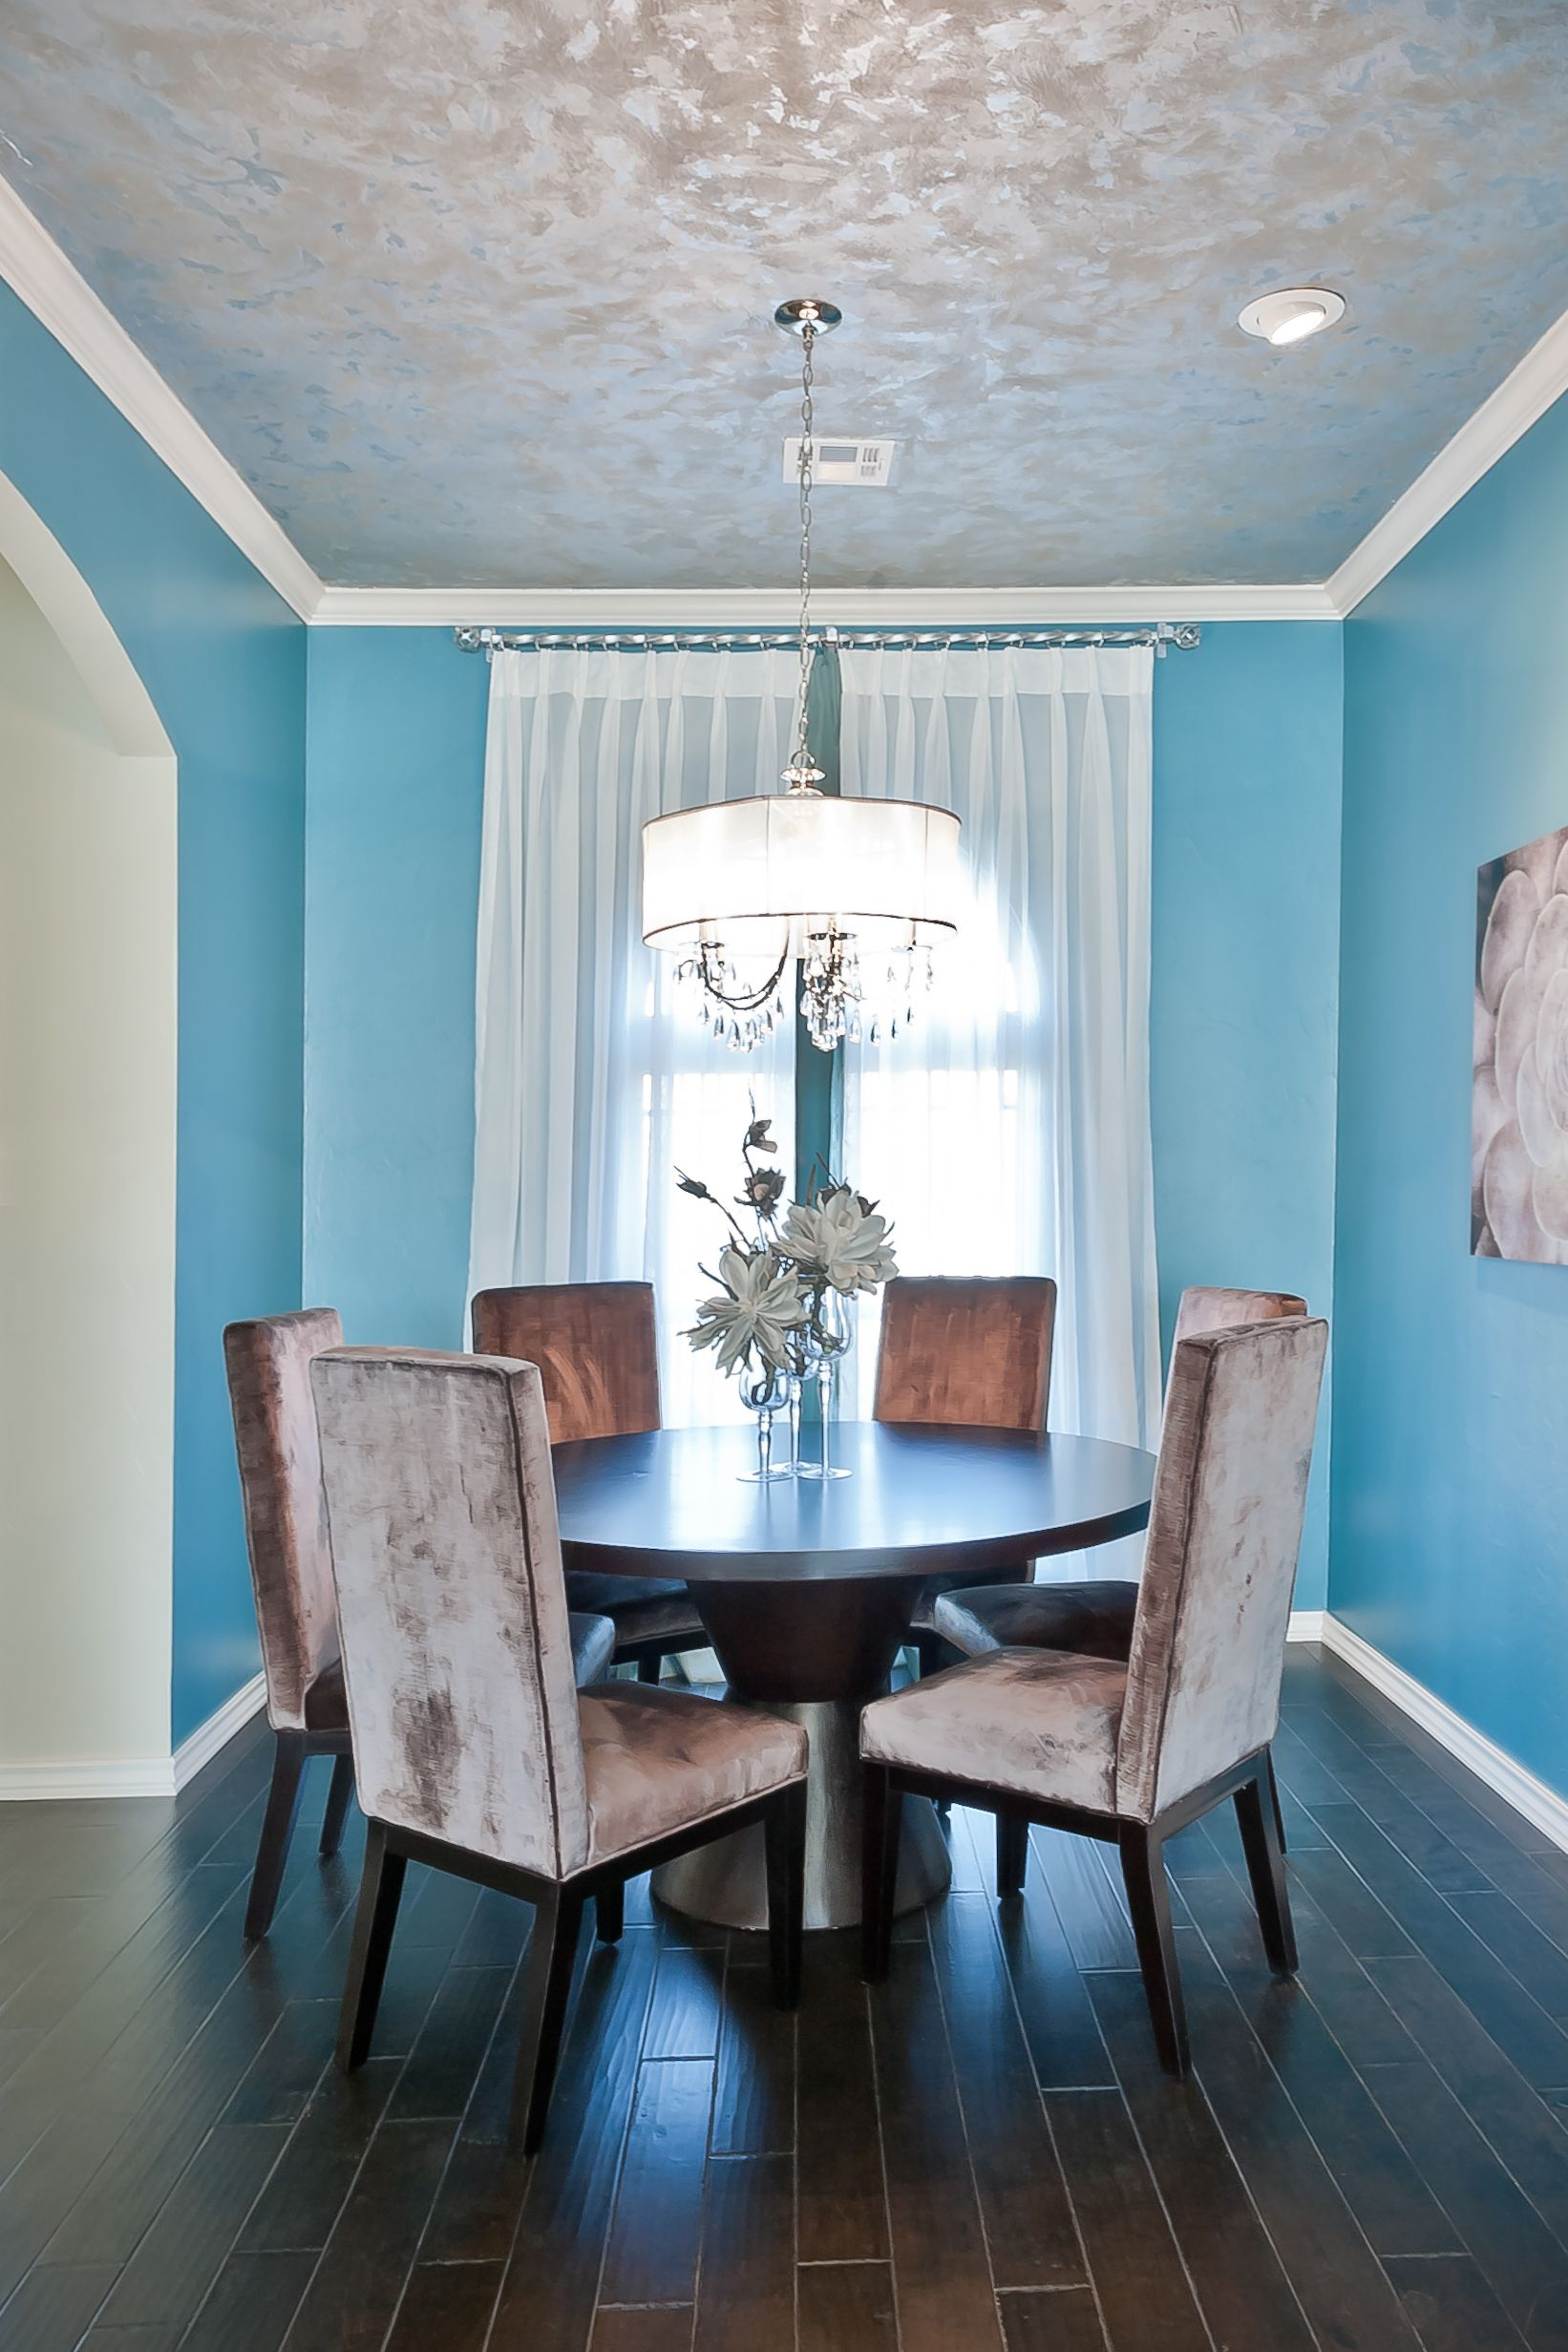 23 Dining Room Ceiling Designs Decorating Ideas: Love The Silver Leaf Ceiling Would Be Awesome In Master Bedroom